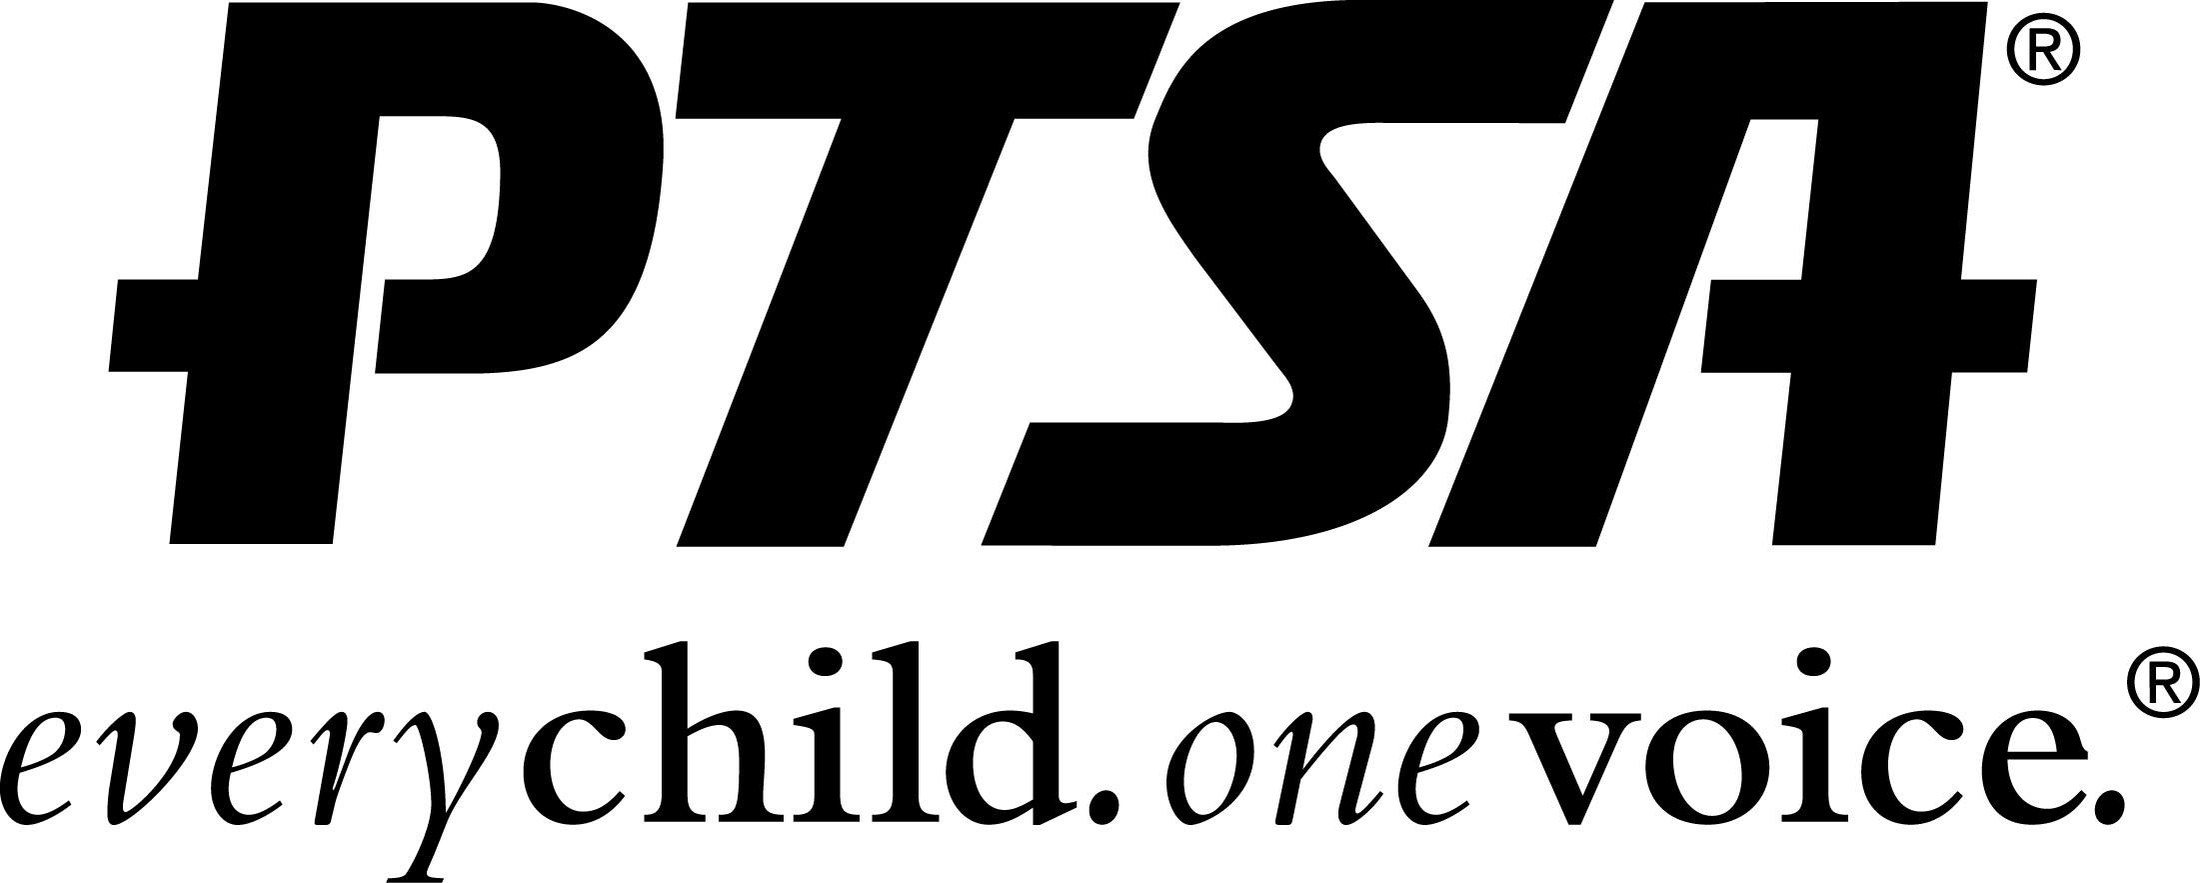 PTSA - One child. One voice. logo